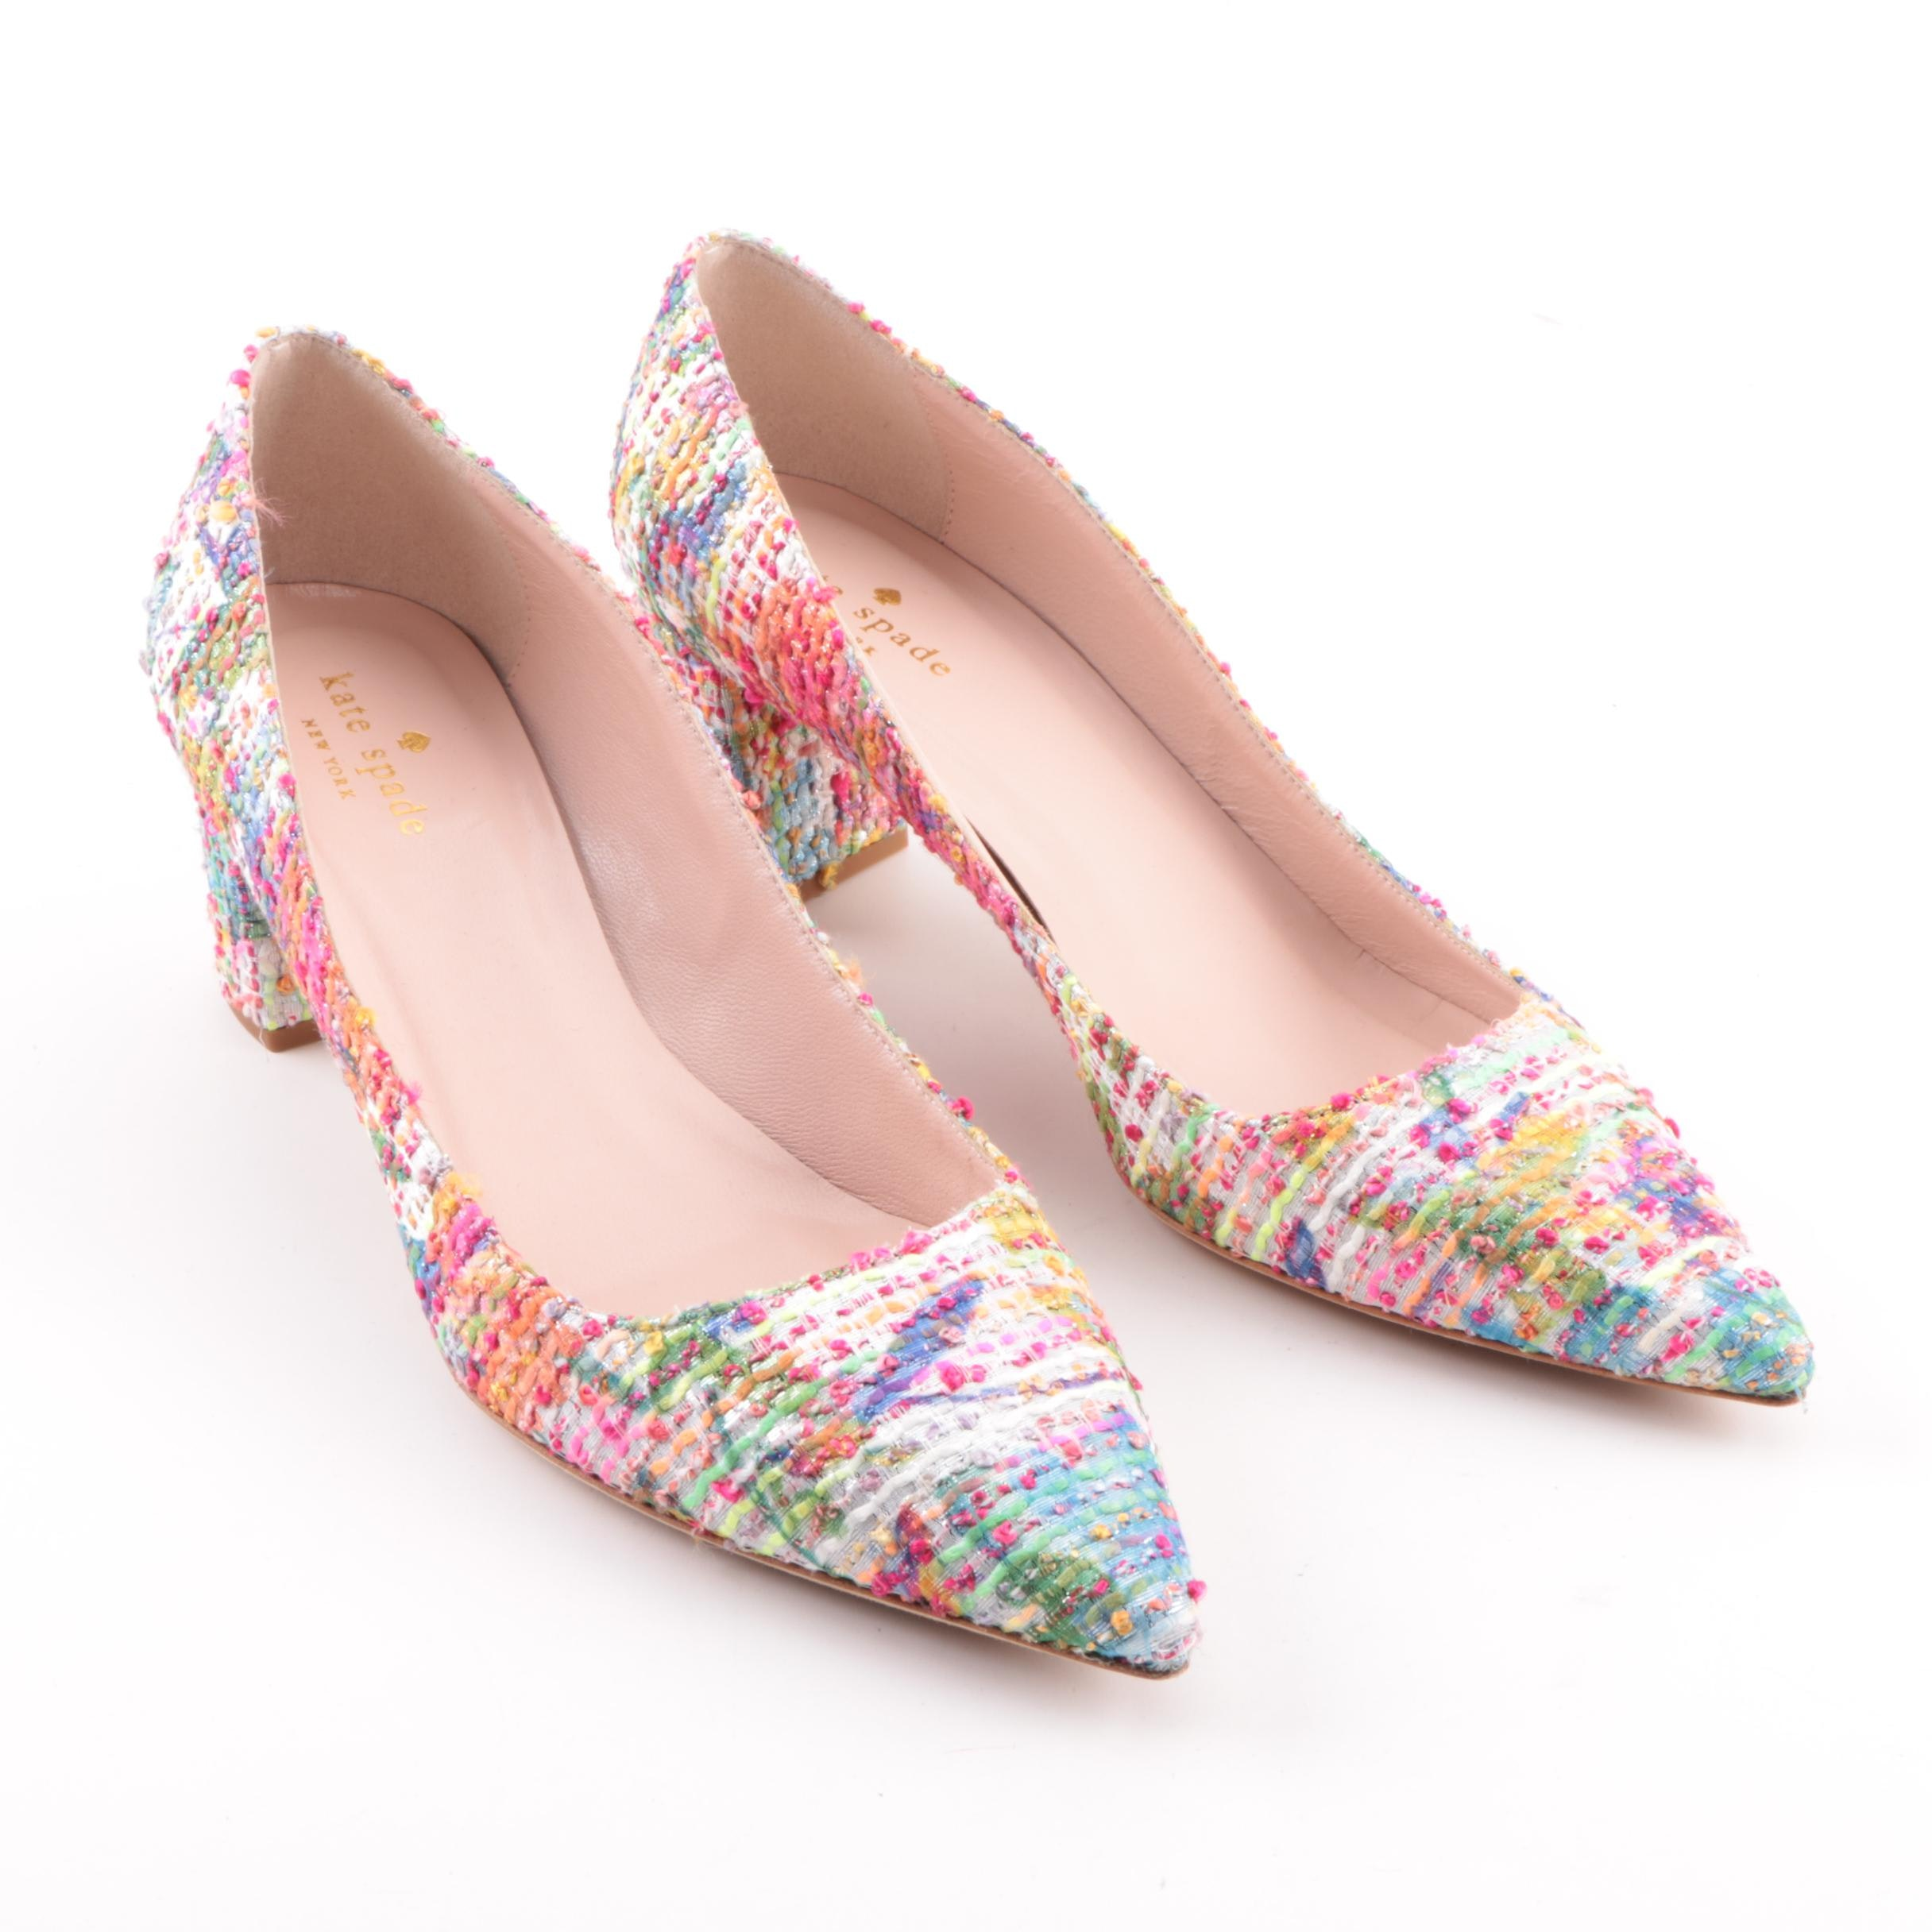 Kate Spade New York Multicolored Tweed High-Heeled Shoes